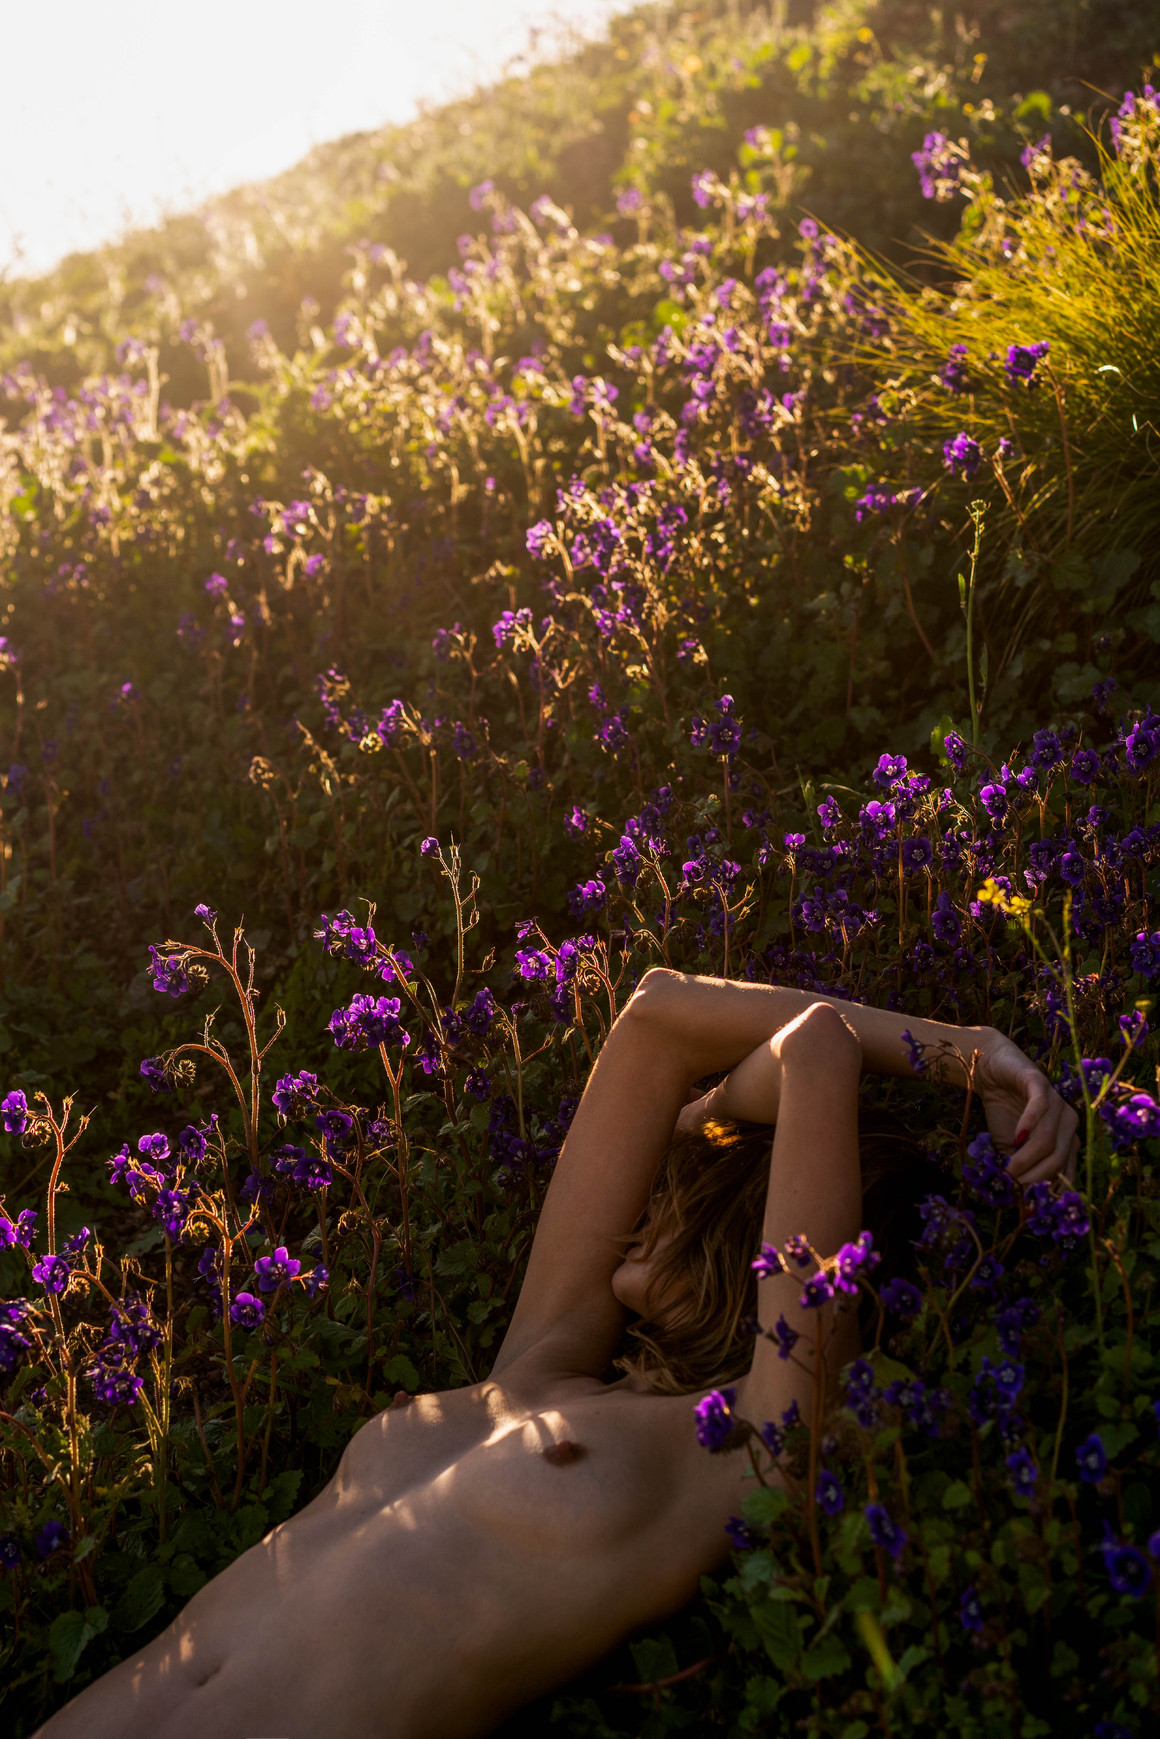 Lara in the flowers